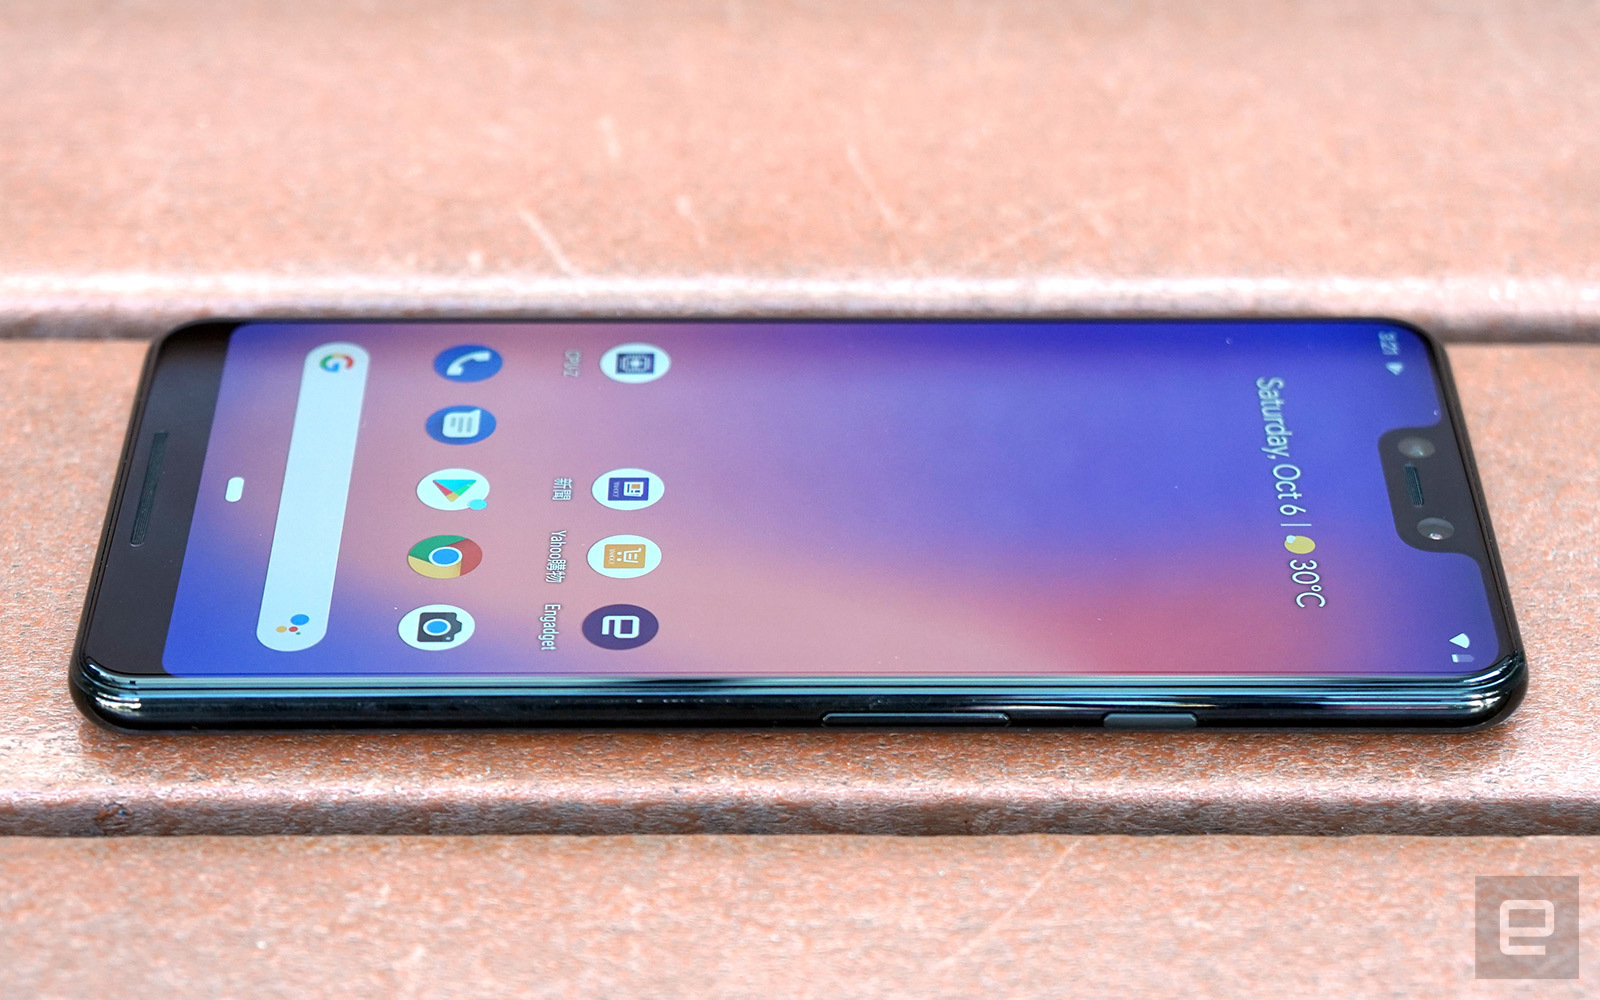 The Pixel 3's most important feature needs to be reliability